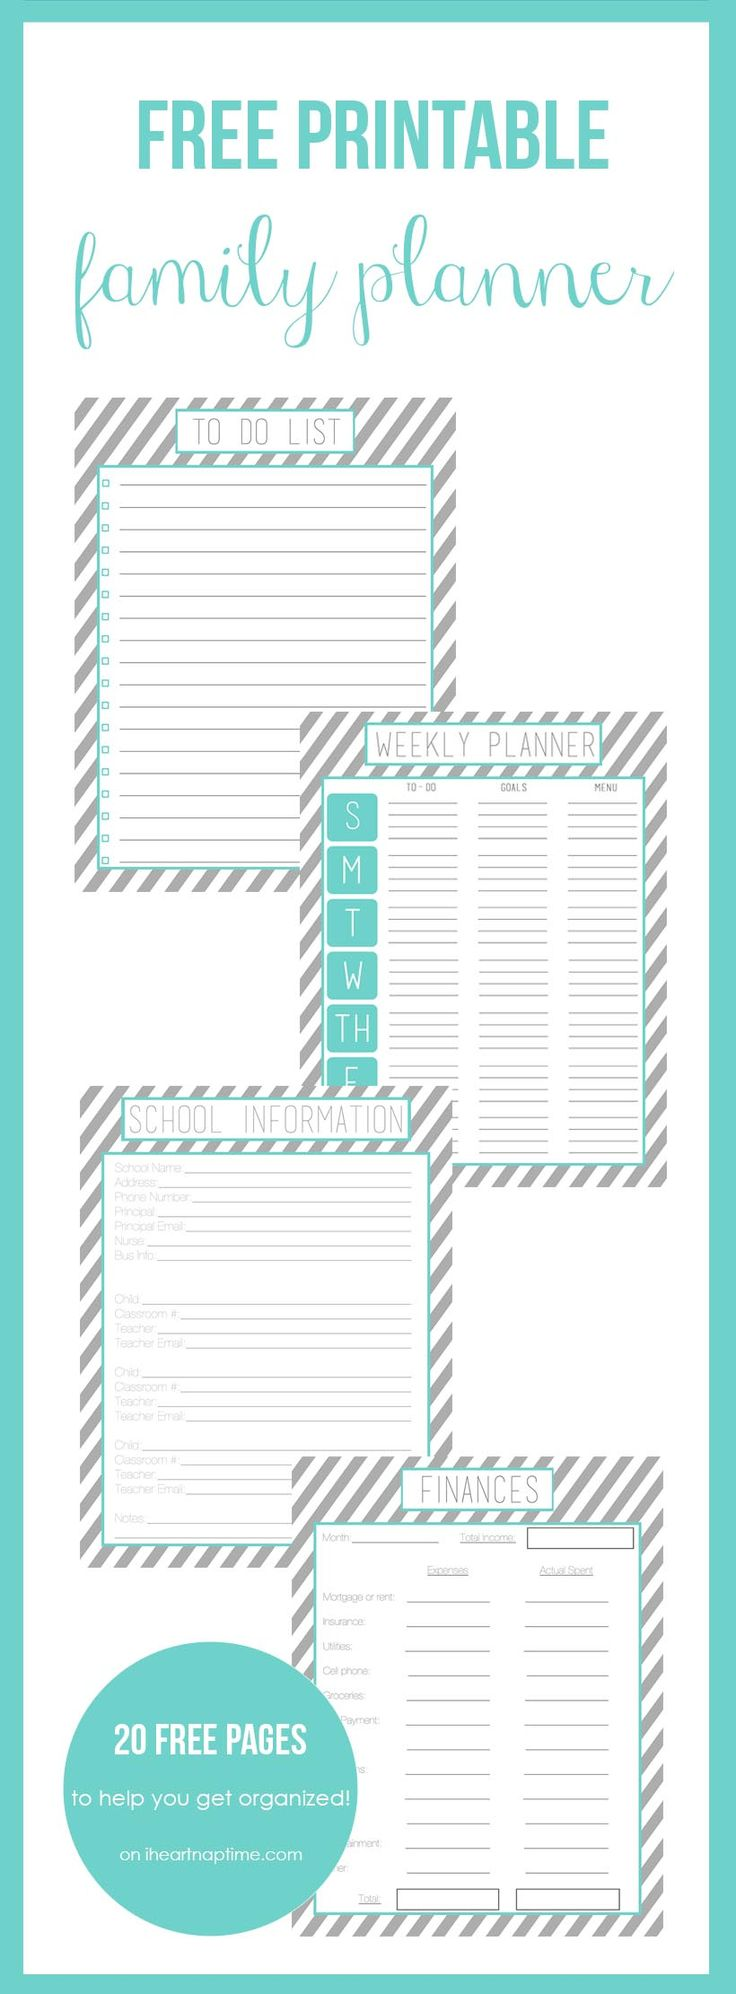 Free printable family planner on iheartnaptime.com -over 20 free printables to help you get organized in the new year!